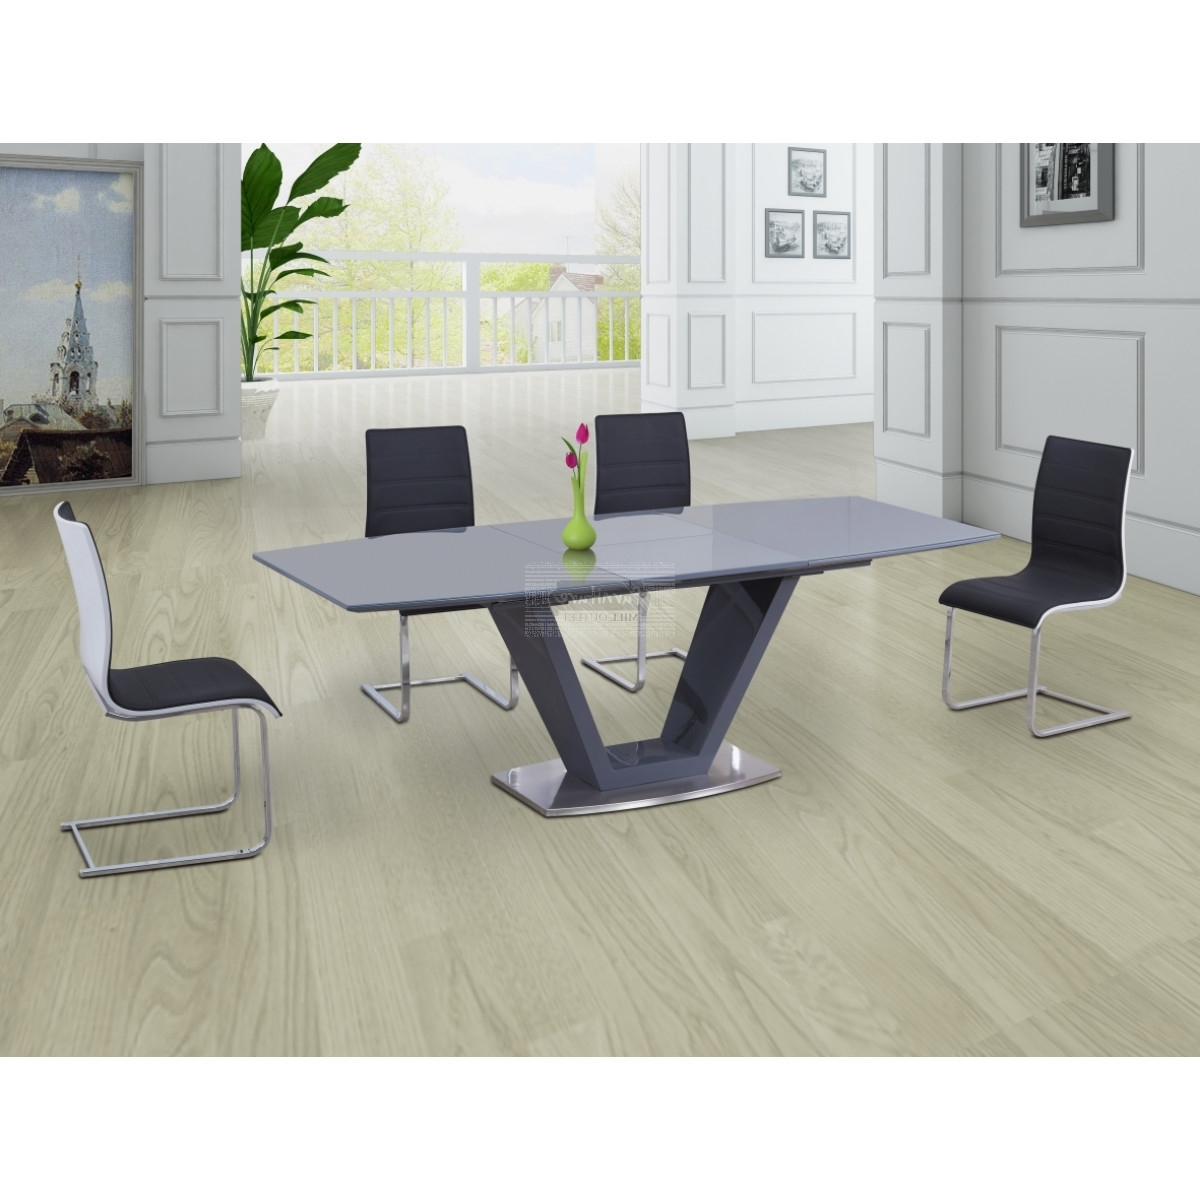 Grey Gloss Dining Tables Within Trendy Lorgato Grey High Gloss Extending Dining Table – 160Cm To 220Cm (Gallery 14 of 25)